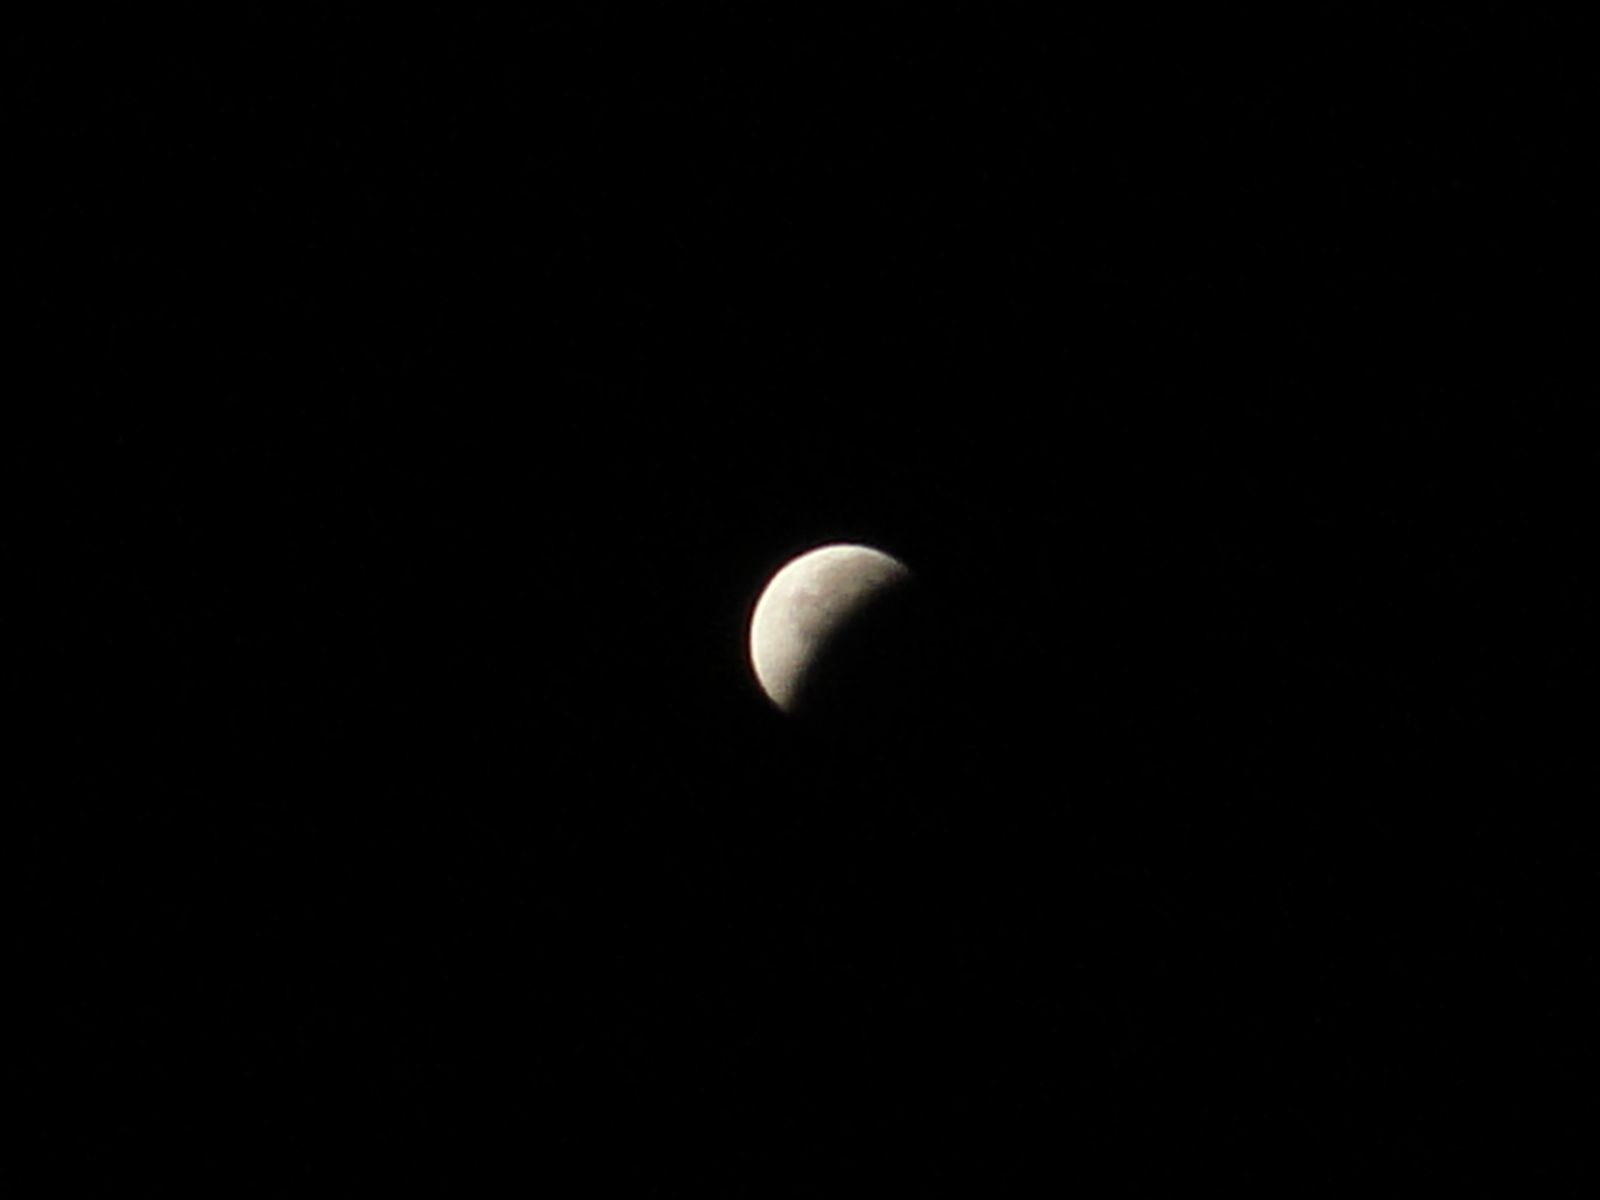 lunar_eclipse_173.jpg